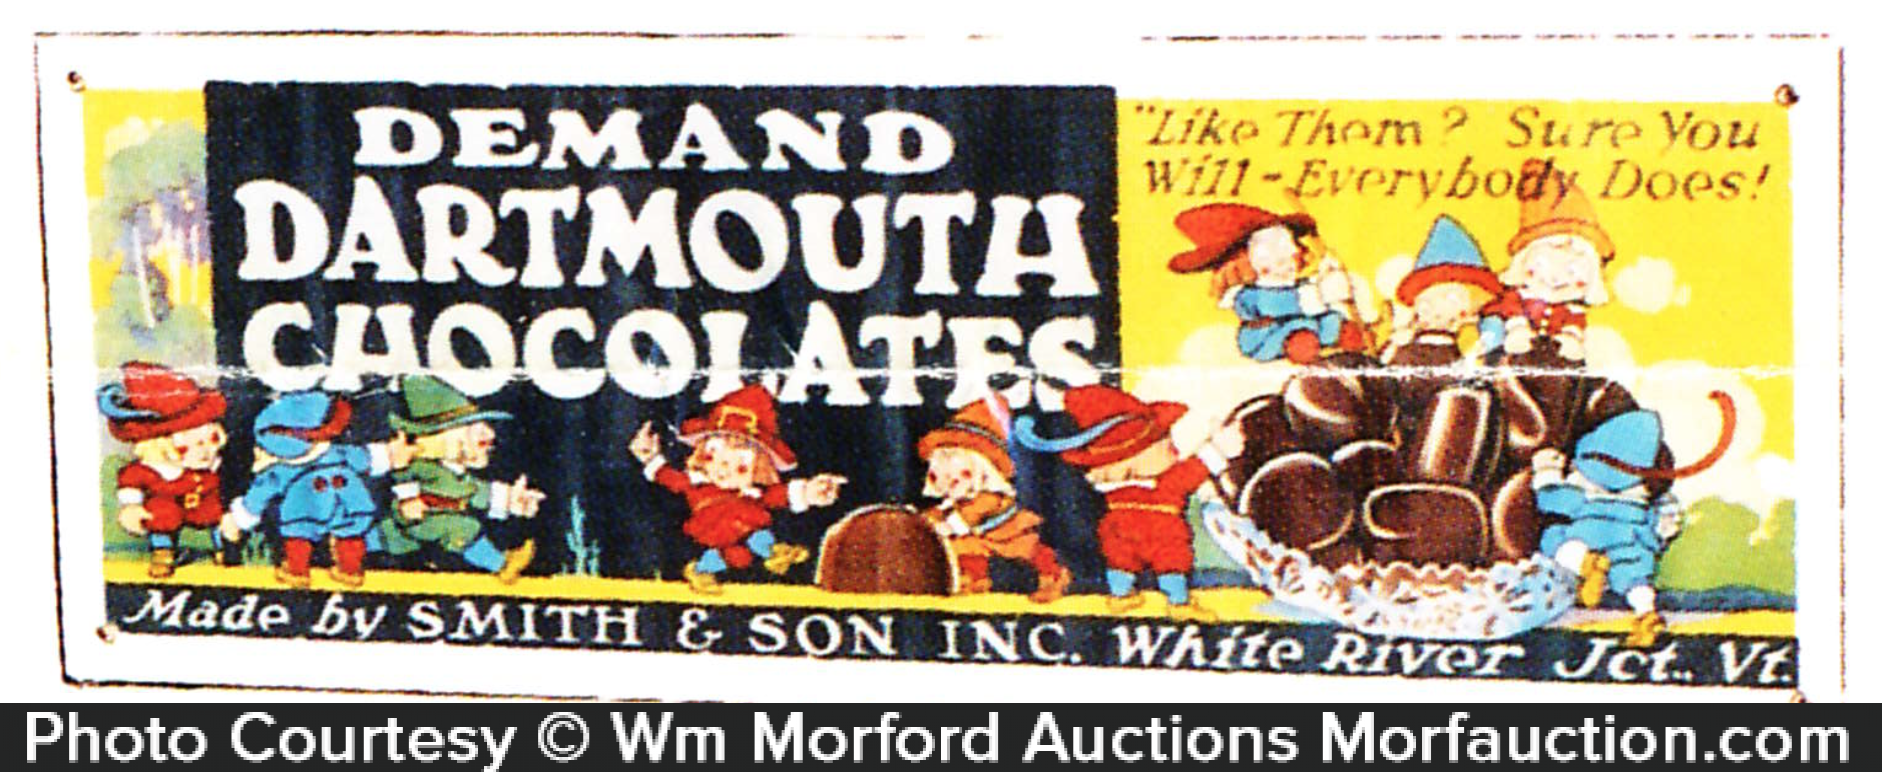 Dartmouth's Chocolates Banner